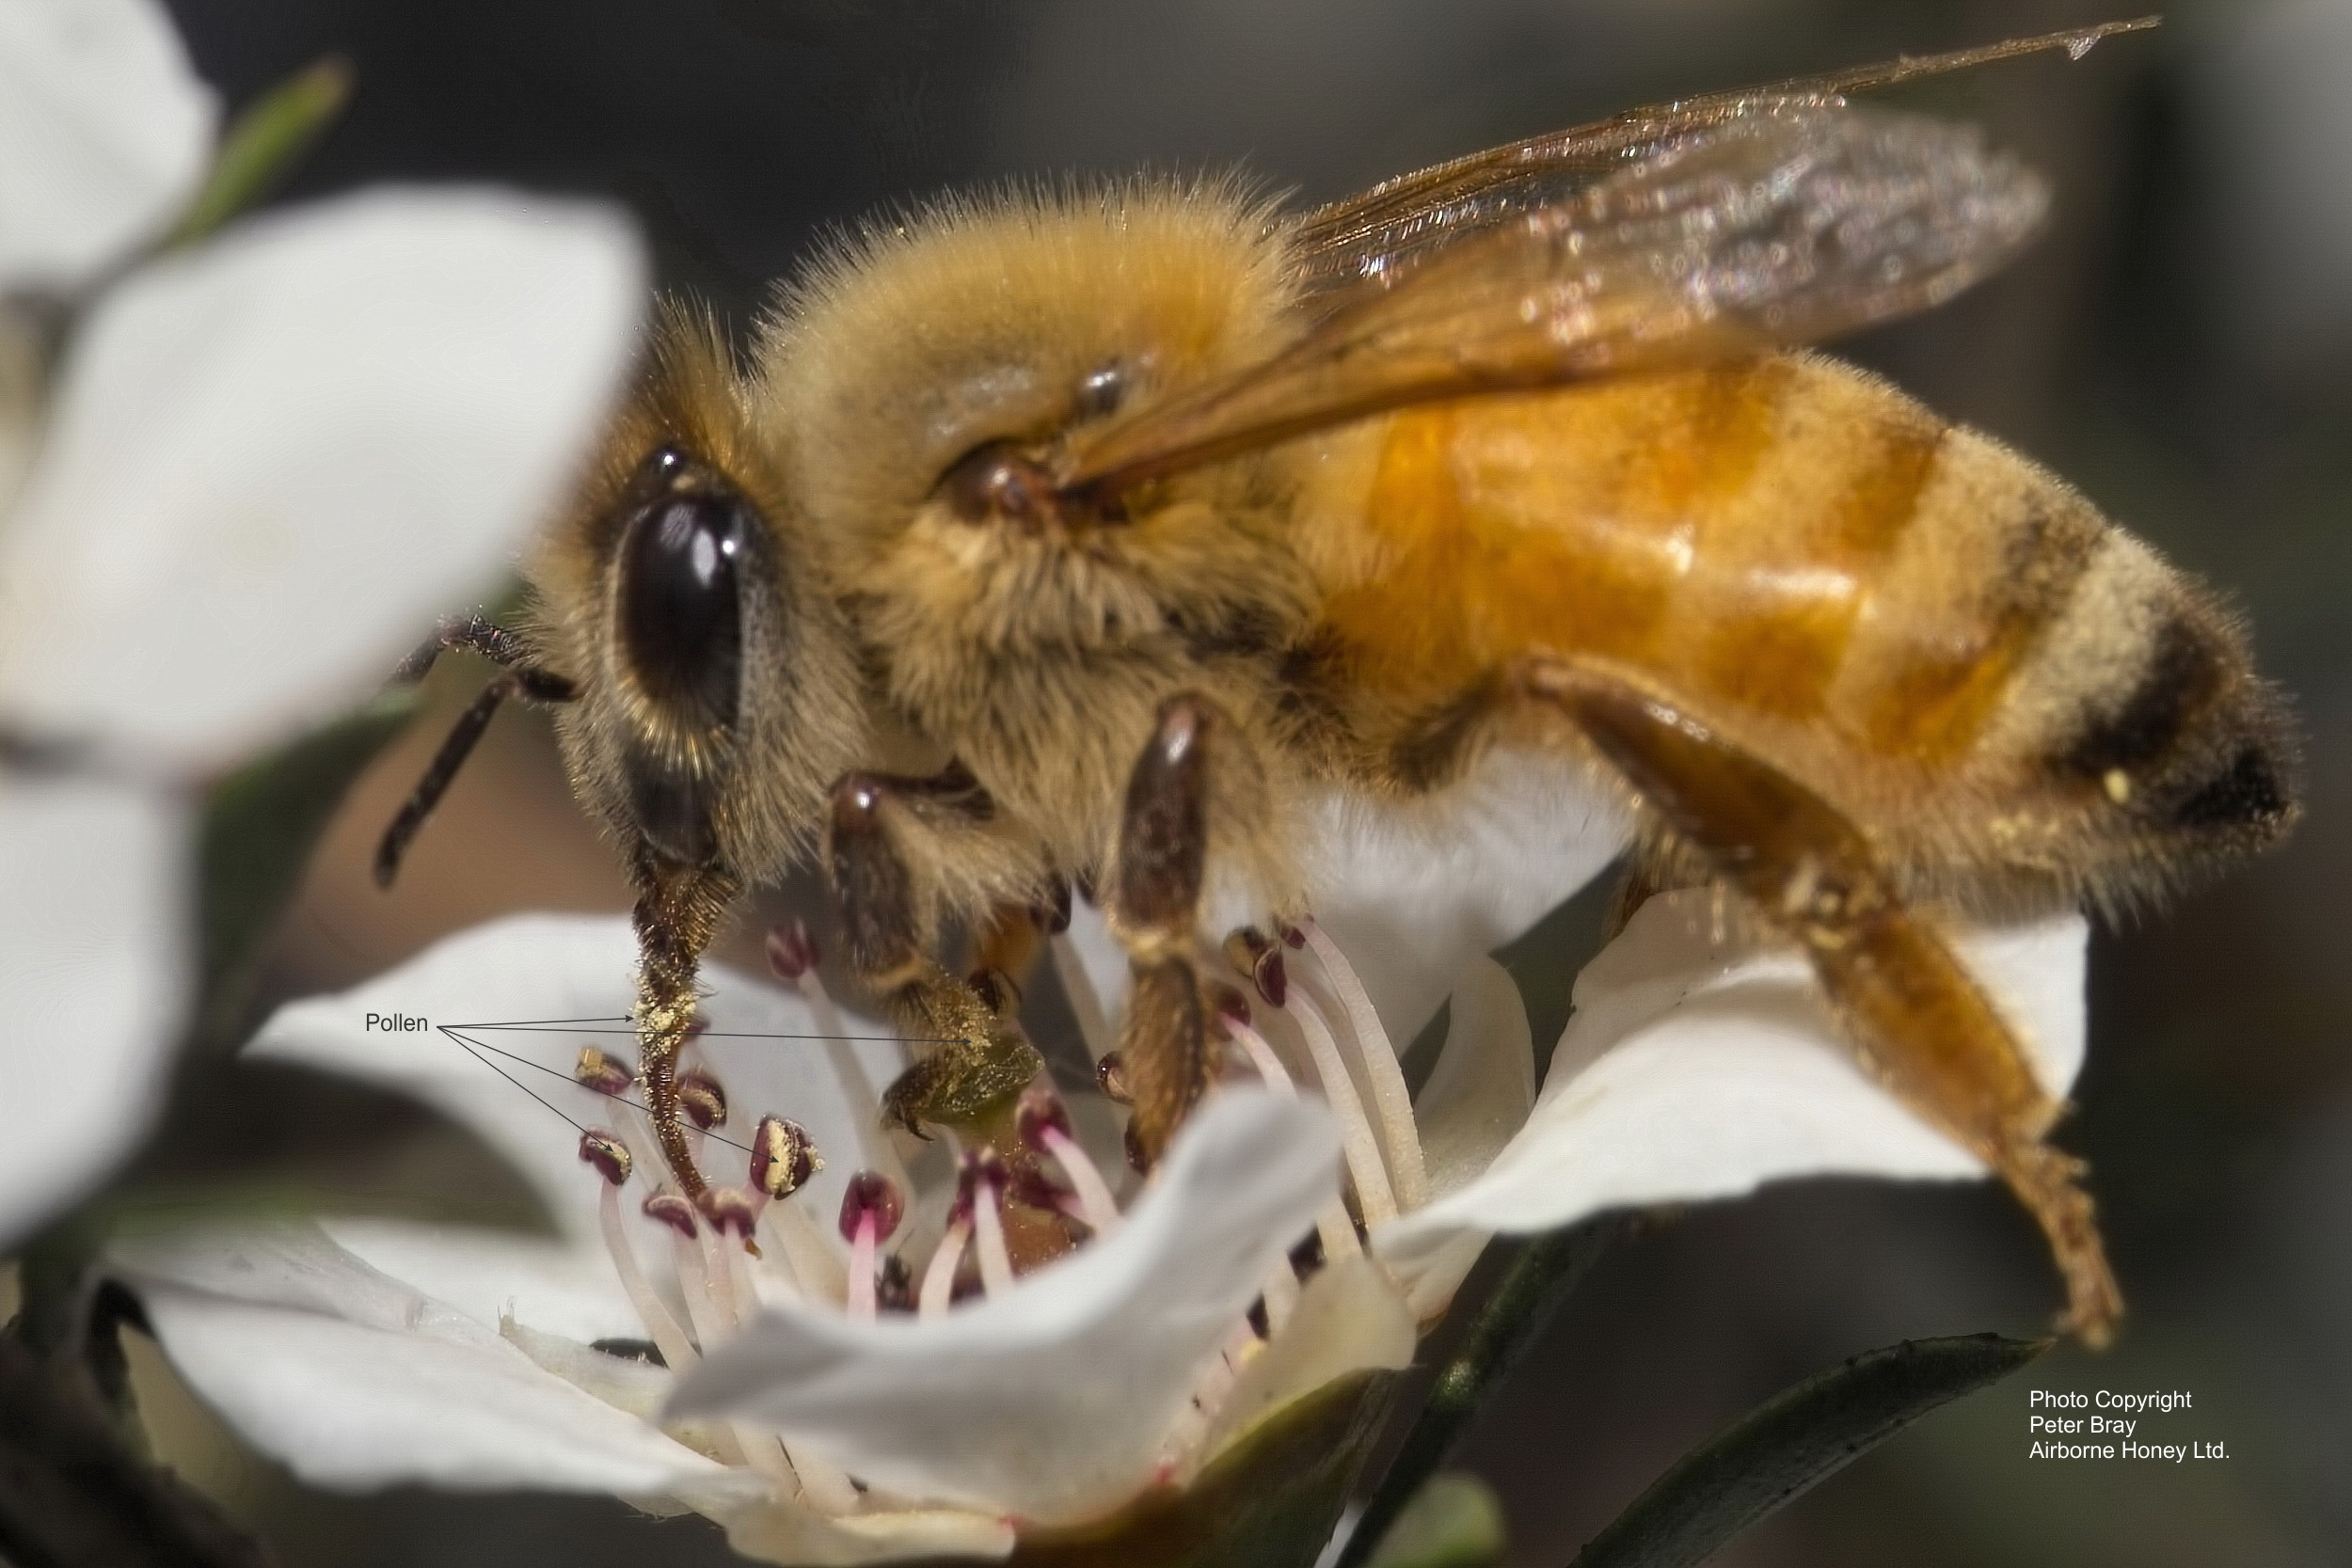 Bee Collecting Nectar From L. scoparium (manuka) Flower Showing Pollen.